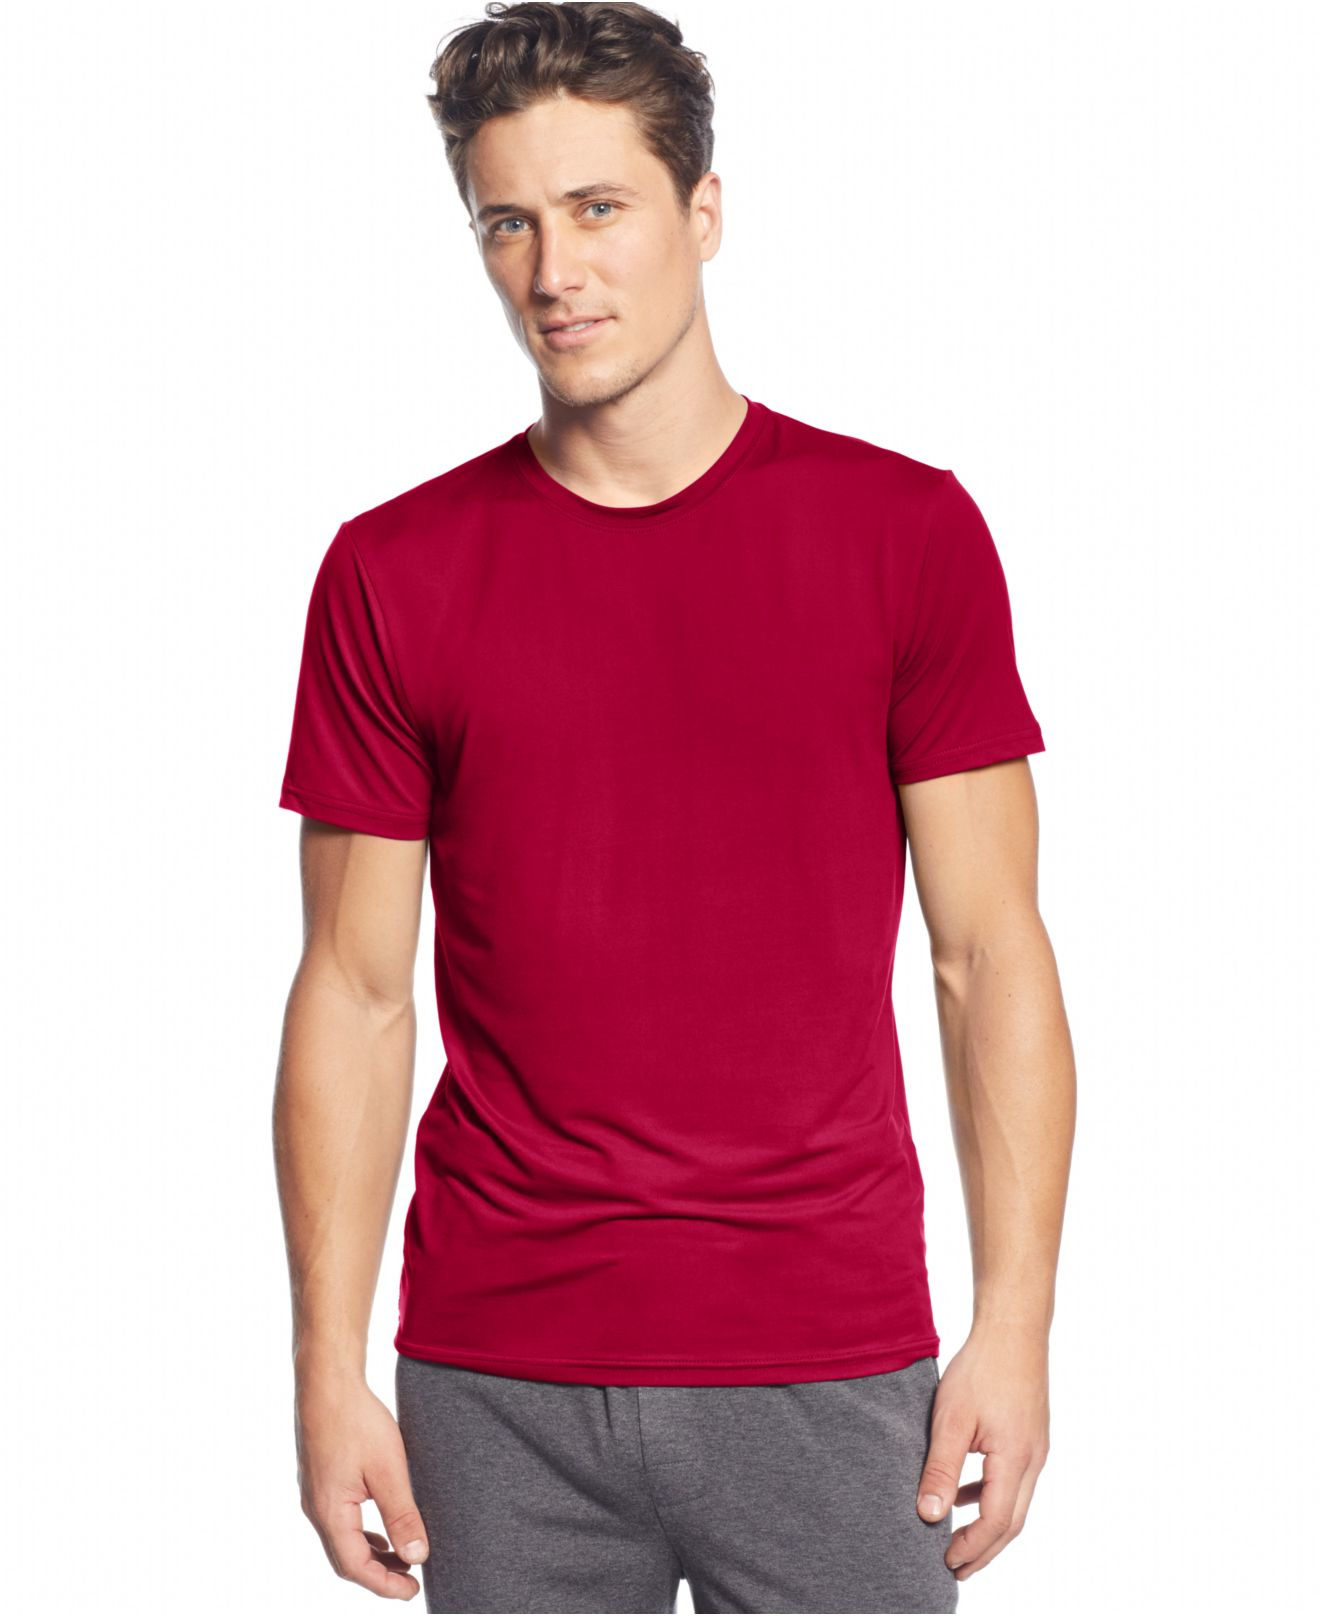 ASOS DESIGN longline long sleeve t-shirt with crew neck in muscle fit 2 pack SAVE. $ ASOS DESIGN crew neck t-shirt in beige. $ ASOS DESIGN longline muscle fit t-shirt with crew neck and stretch in red. $ ASOS DESIGN muscle fit t-shirt with roll sleeve 10 pack SAVE. $